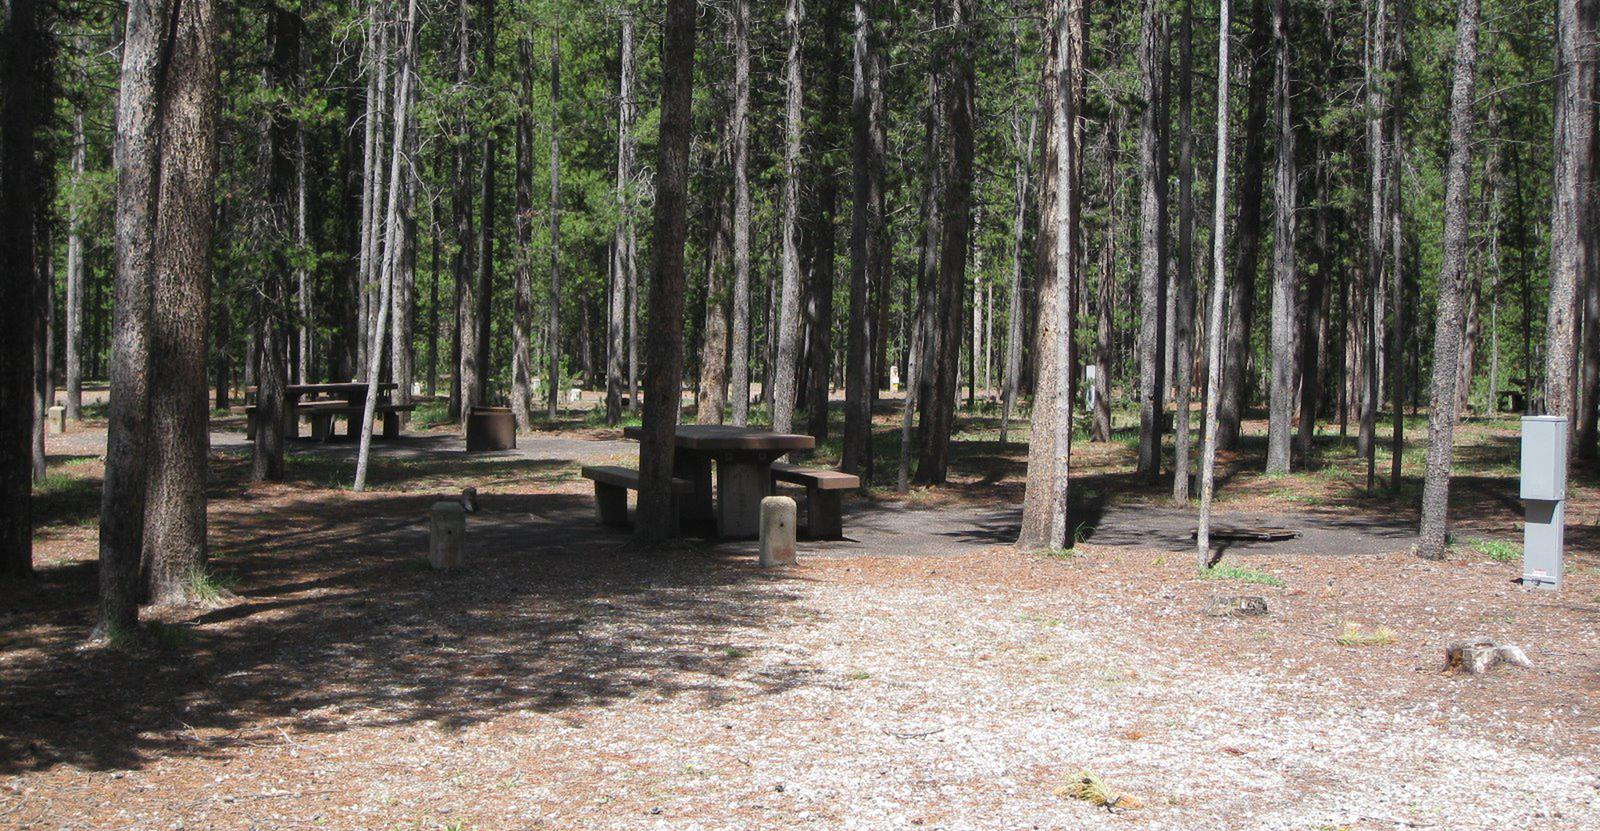 Site C13, surrounded by pine trees, picnic table & fire ringSite C13